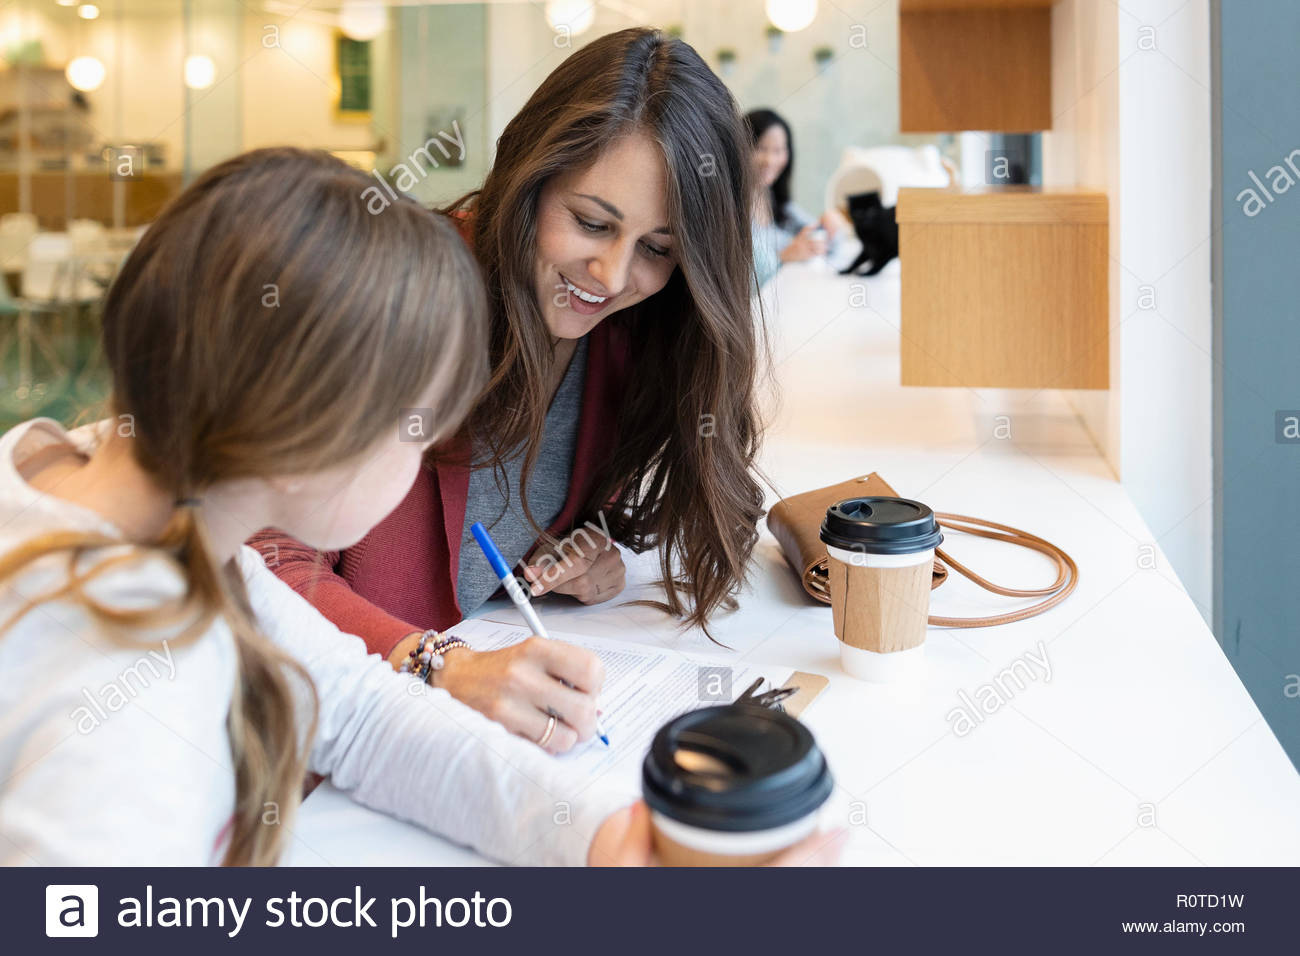 Mother and daughter filling out paperwork in cafe - Stock Image